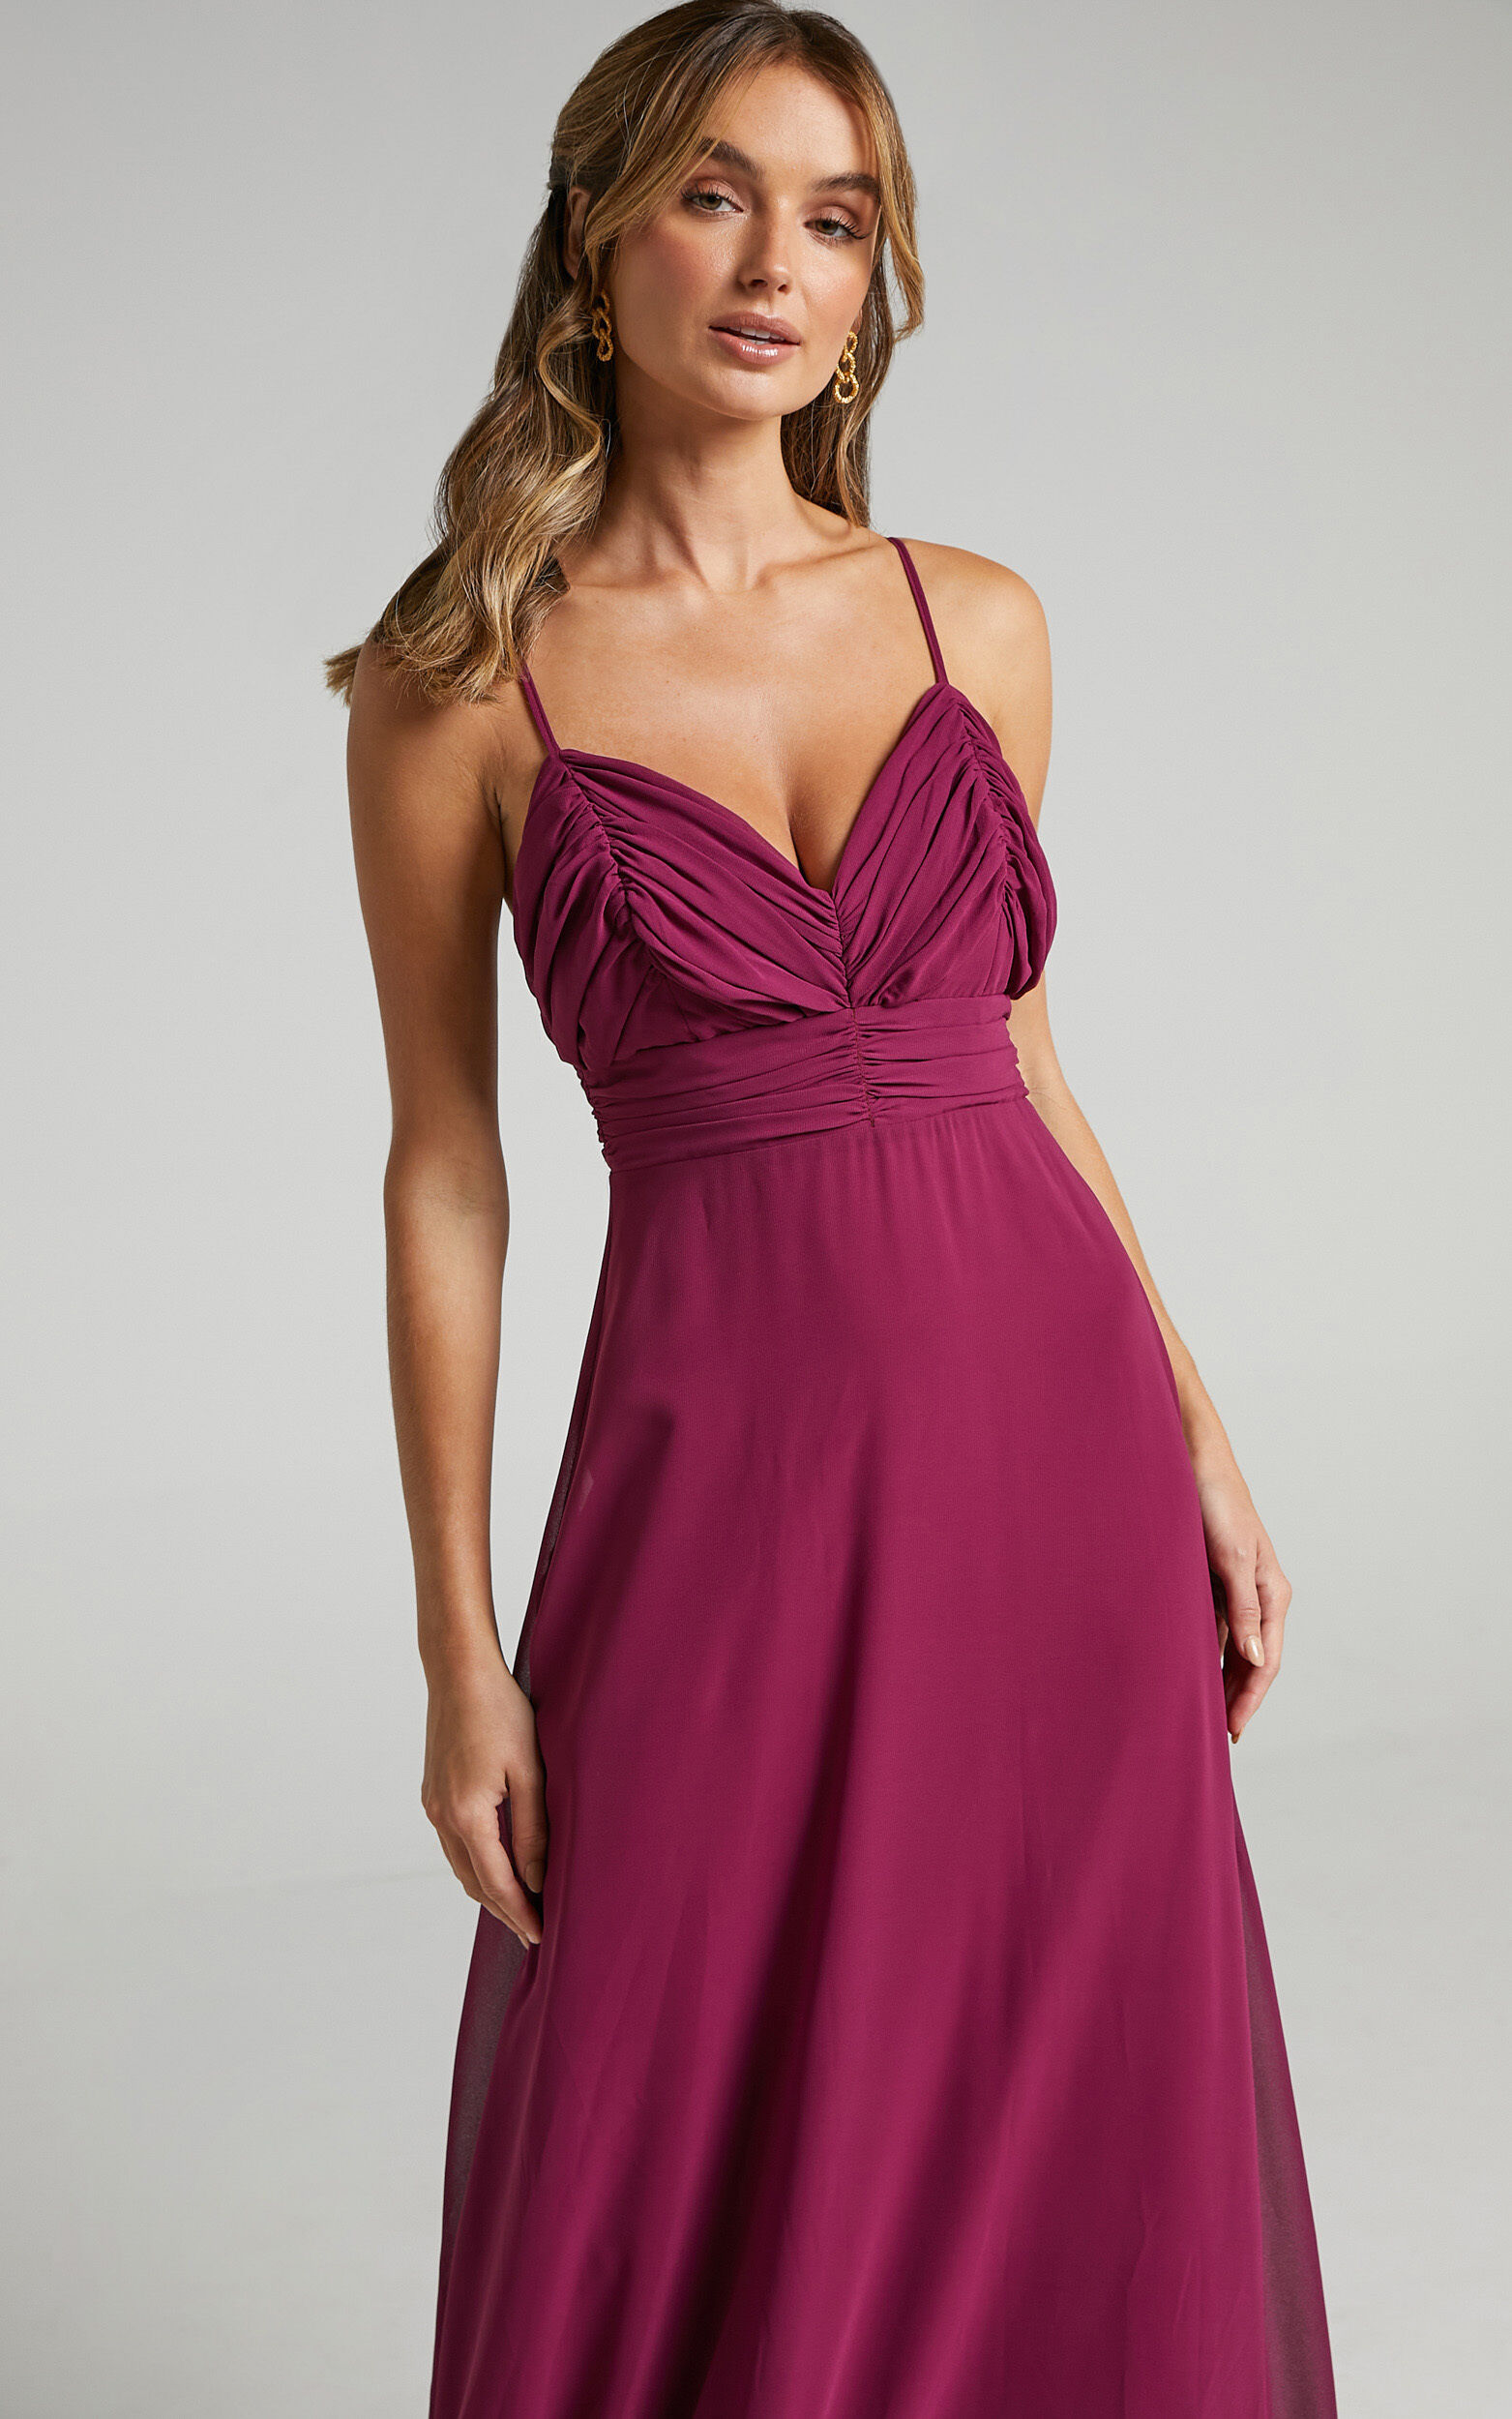 Just One Dance Dress in Mulberry - 06, PRP2, super-hi-res image number null